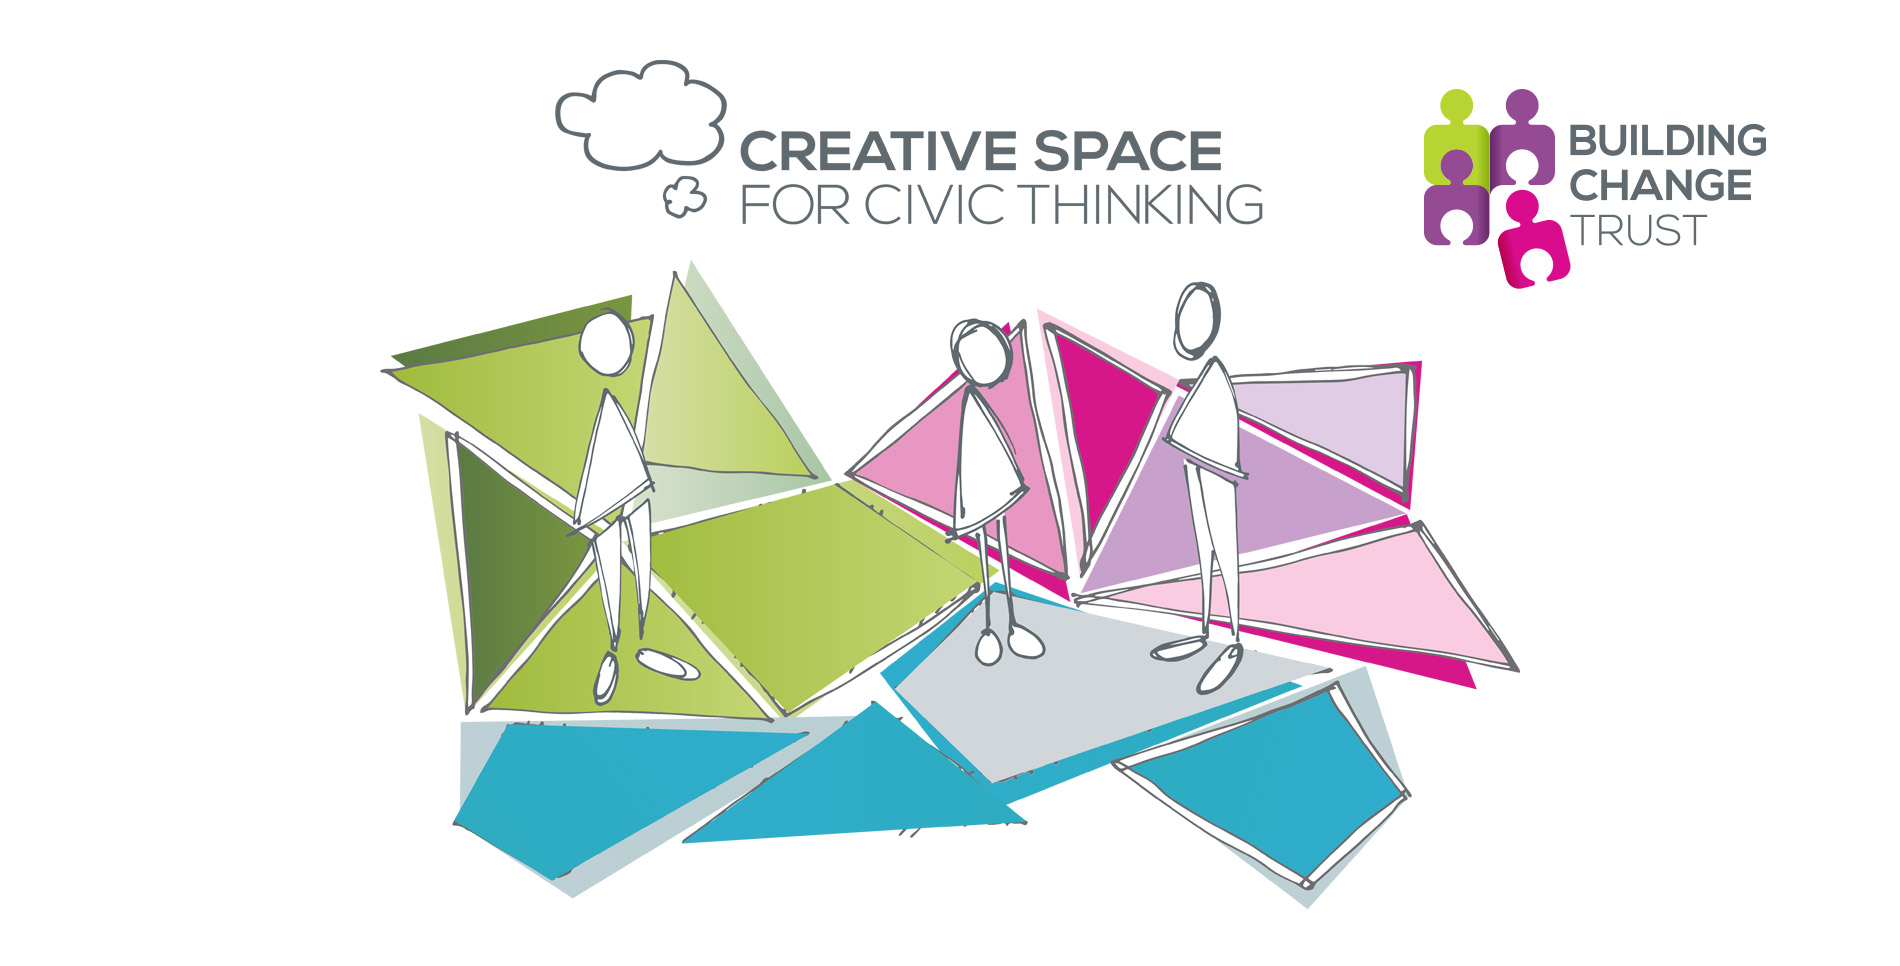 Creative Space For Civic Thinking